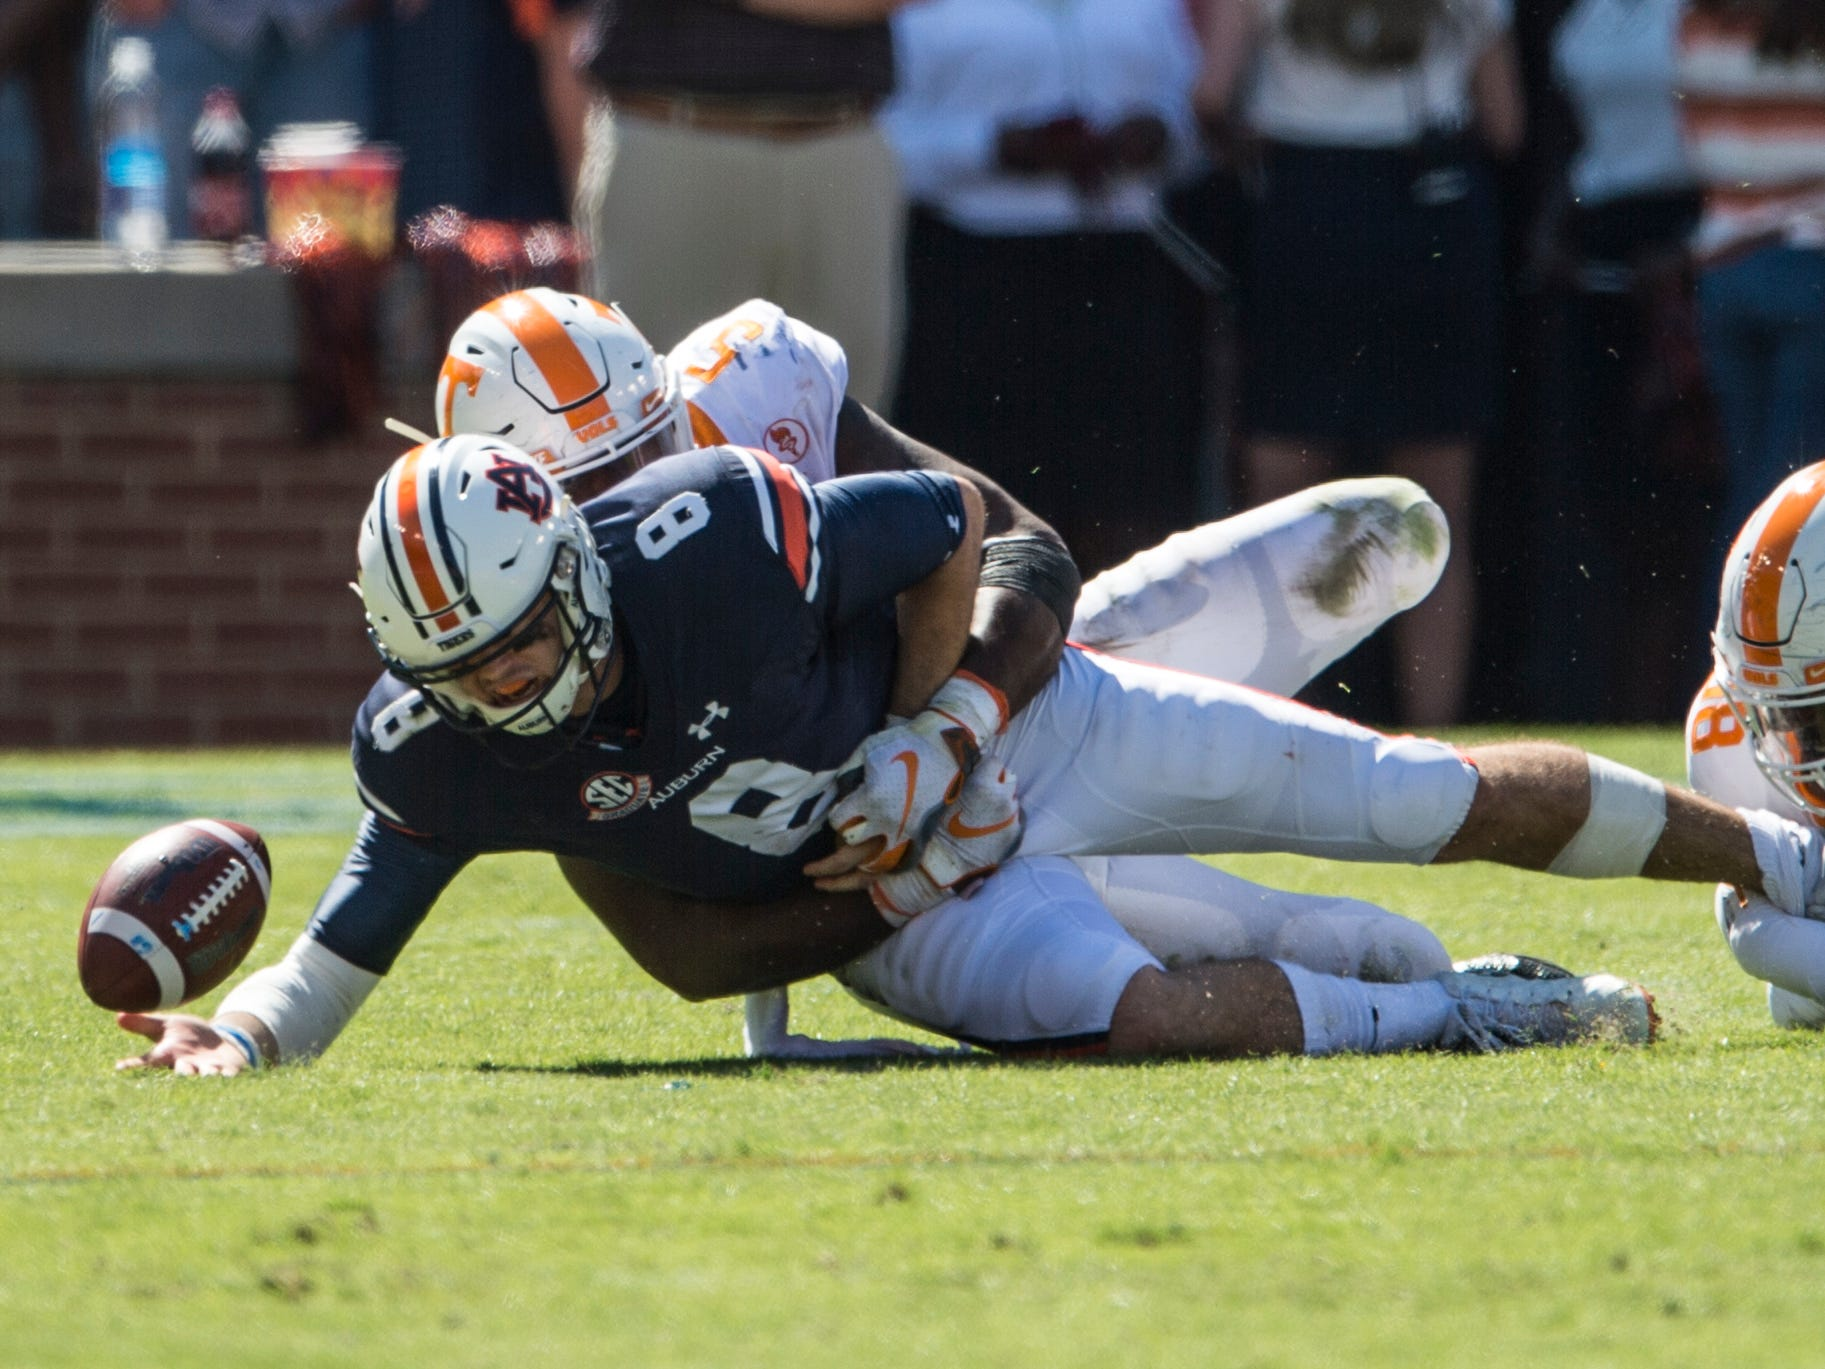 Auburn's Jarrett Stidham (8) looses the ball as he is taken down by Tennessee's Kyle Phillips (5) at Jordan-Hare Stadium in Auburn, Ala., on Saturday, Oct. 13, 2018. Tennessee defeated Auburn 30-24.